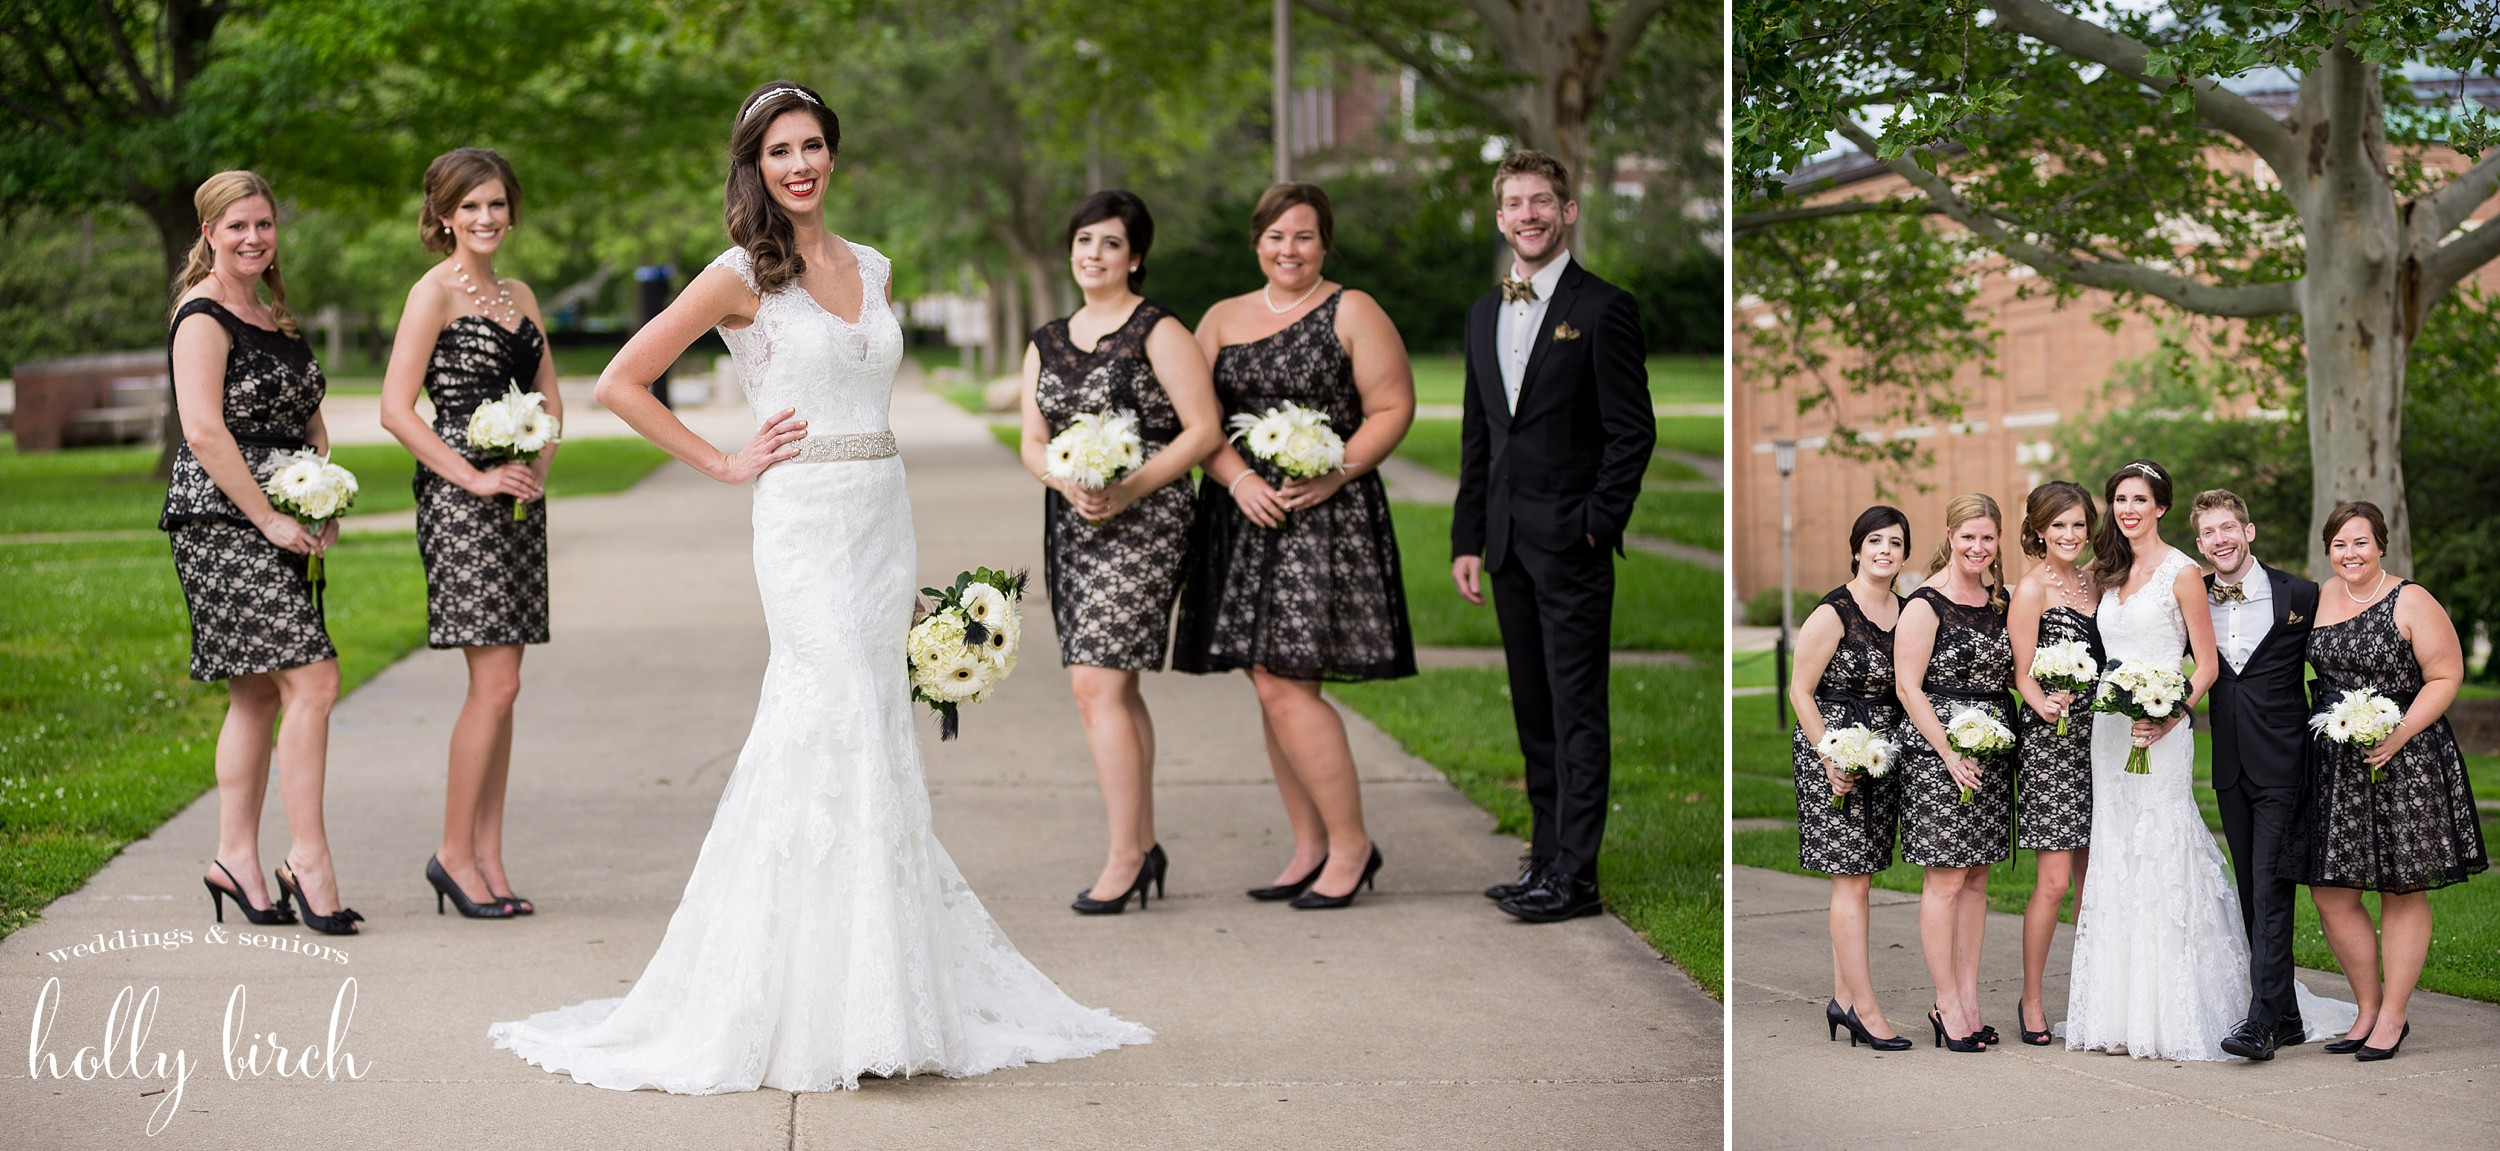 bridesmaids black lace dresses